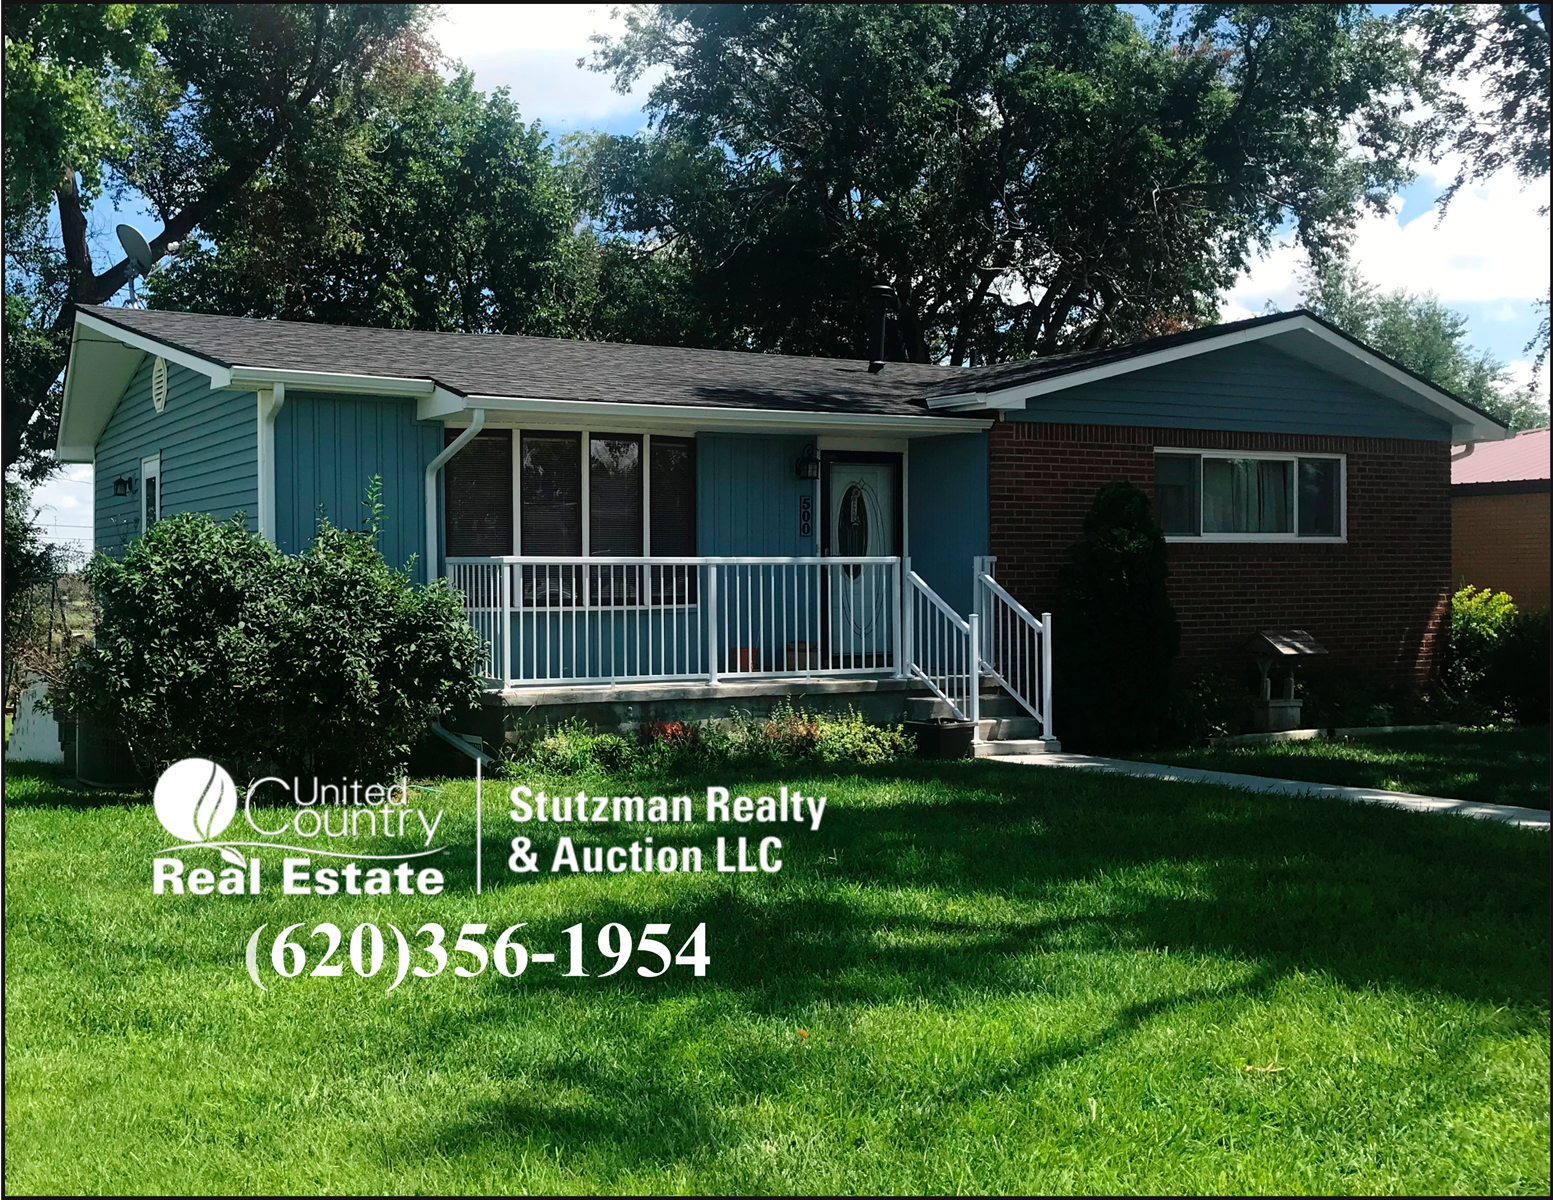 WELL MAINTAINED HOME FOR SALE IN ULYSSES, KANSAS